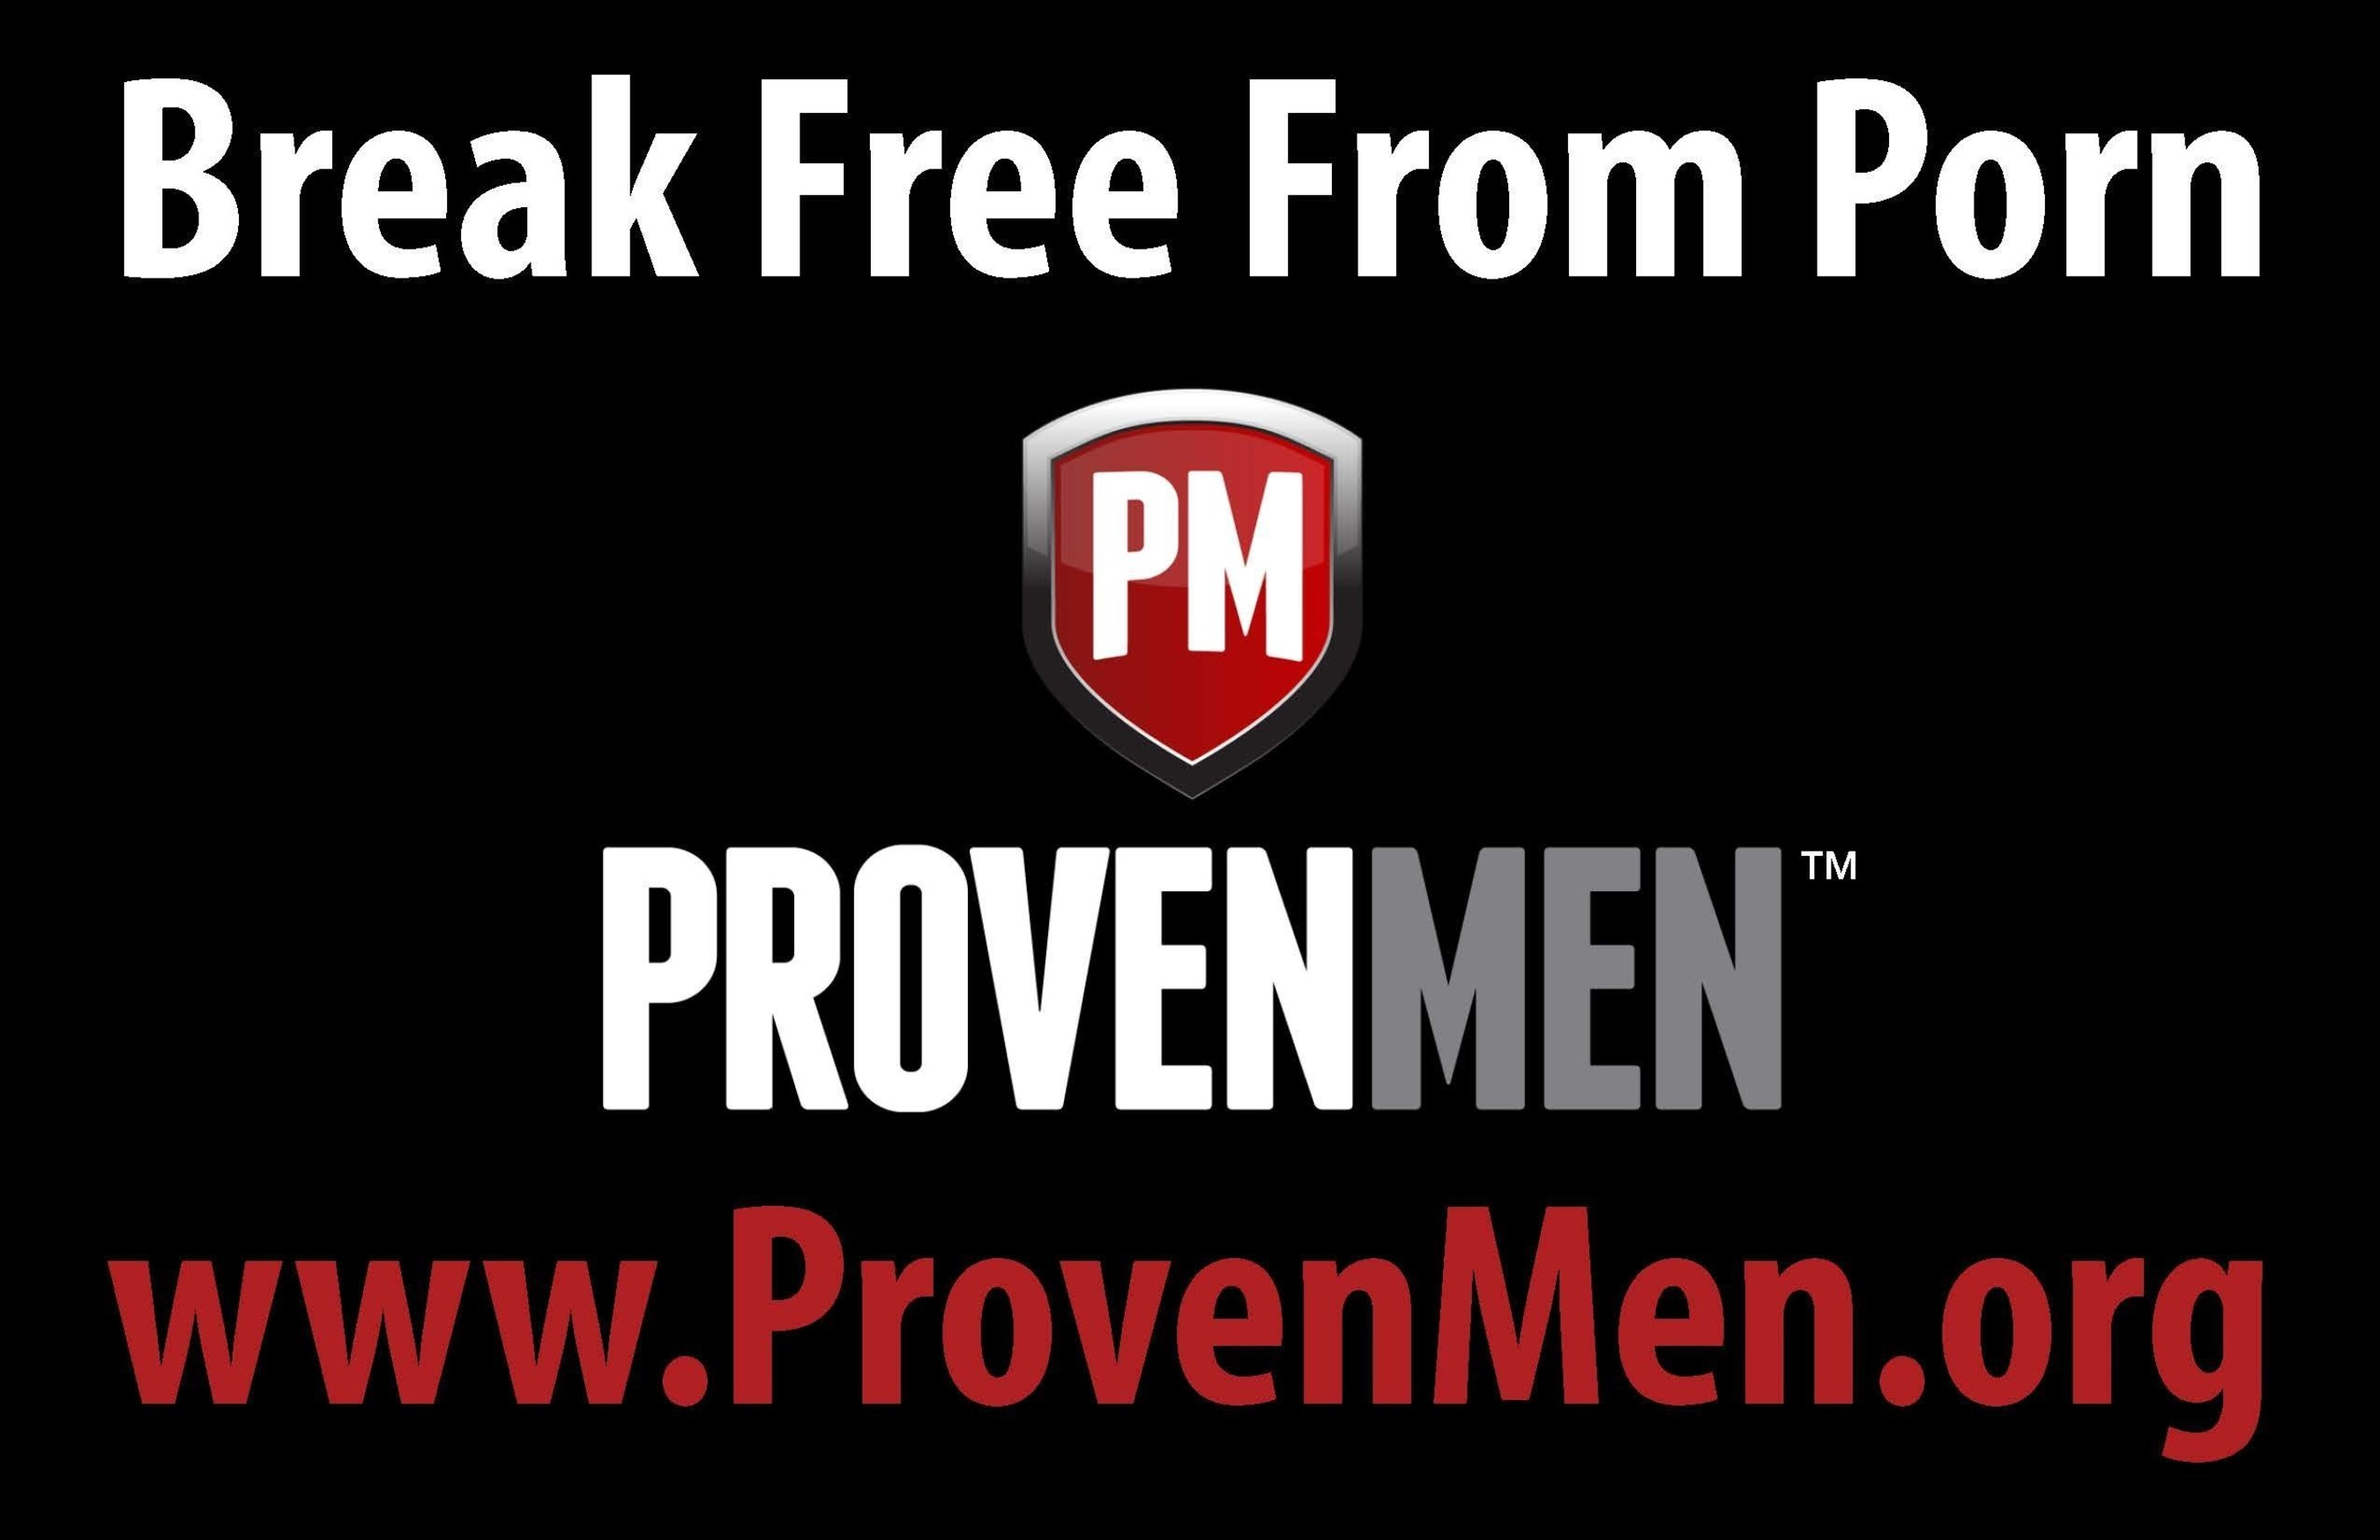 Proven Men Ministries: Helping men break free from the grip of porn and live with strength and courage (PRNewsFoto/Proven Men Ministries) (PRNewsFoto/Proven Men Ministries)